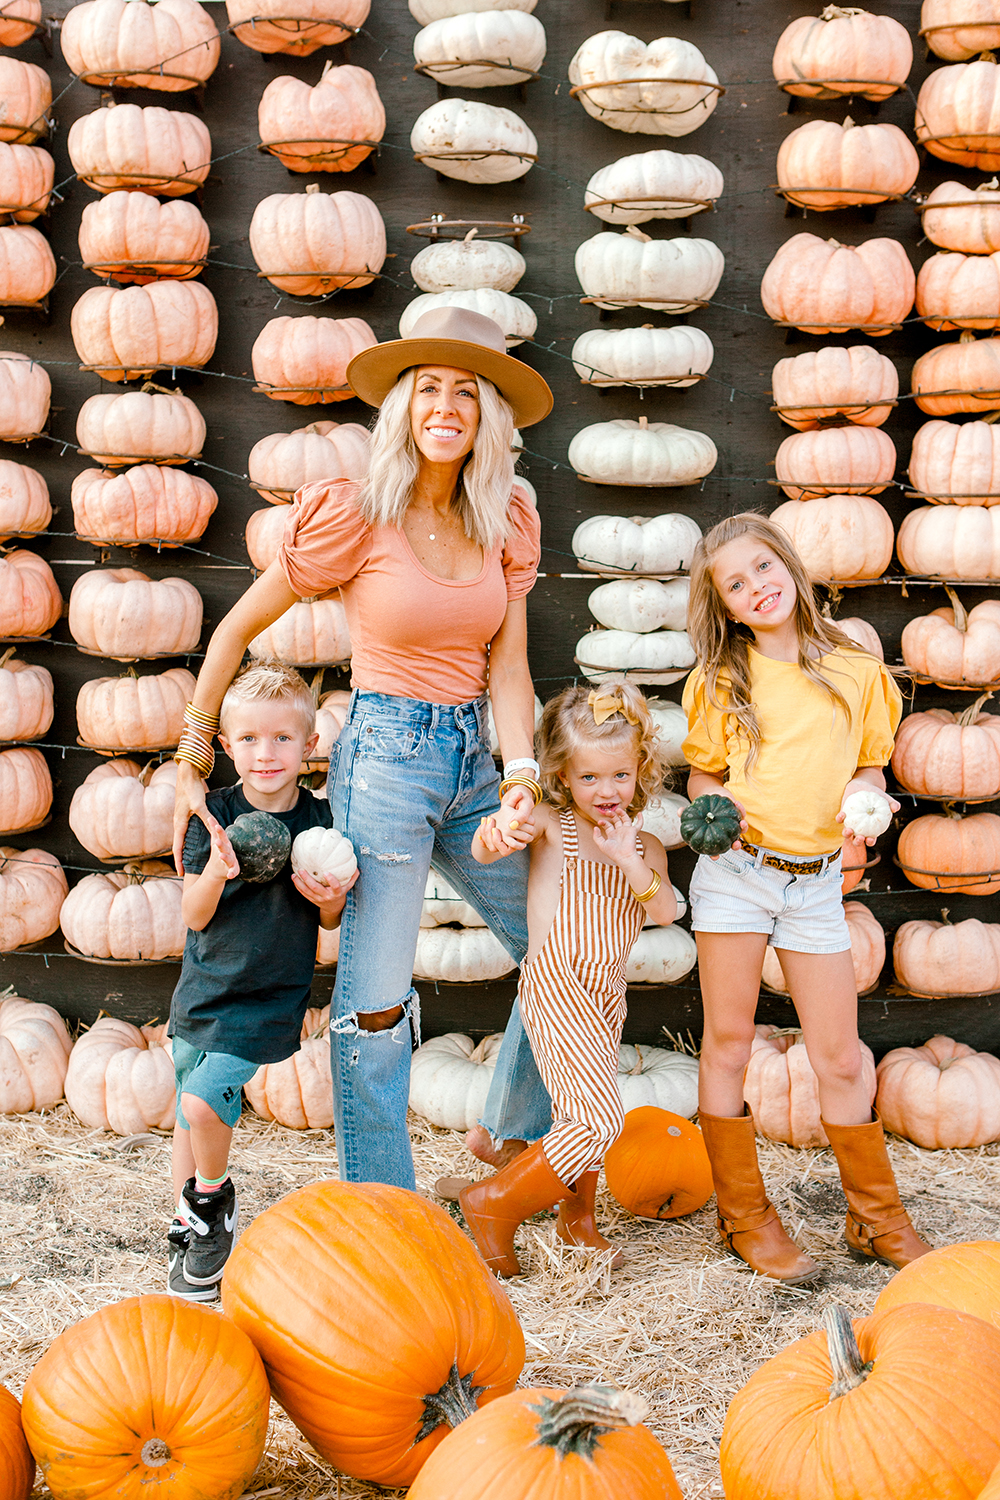 kailee wright Pumpkin patch